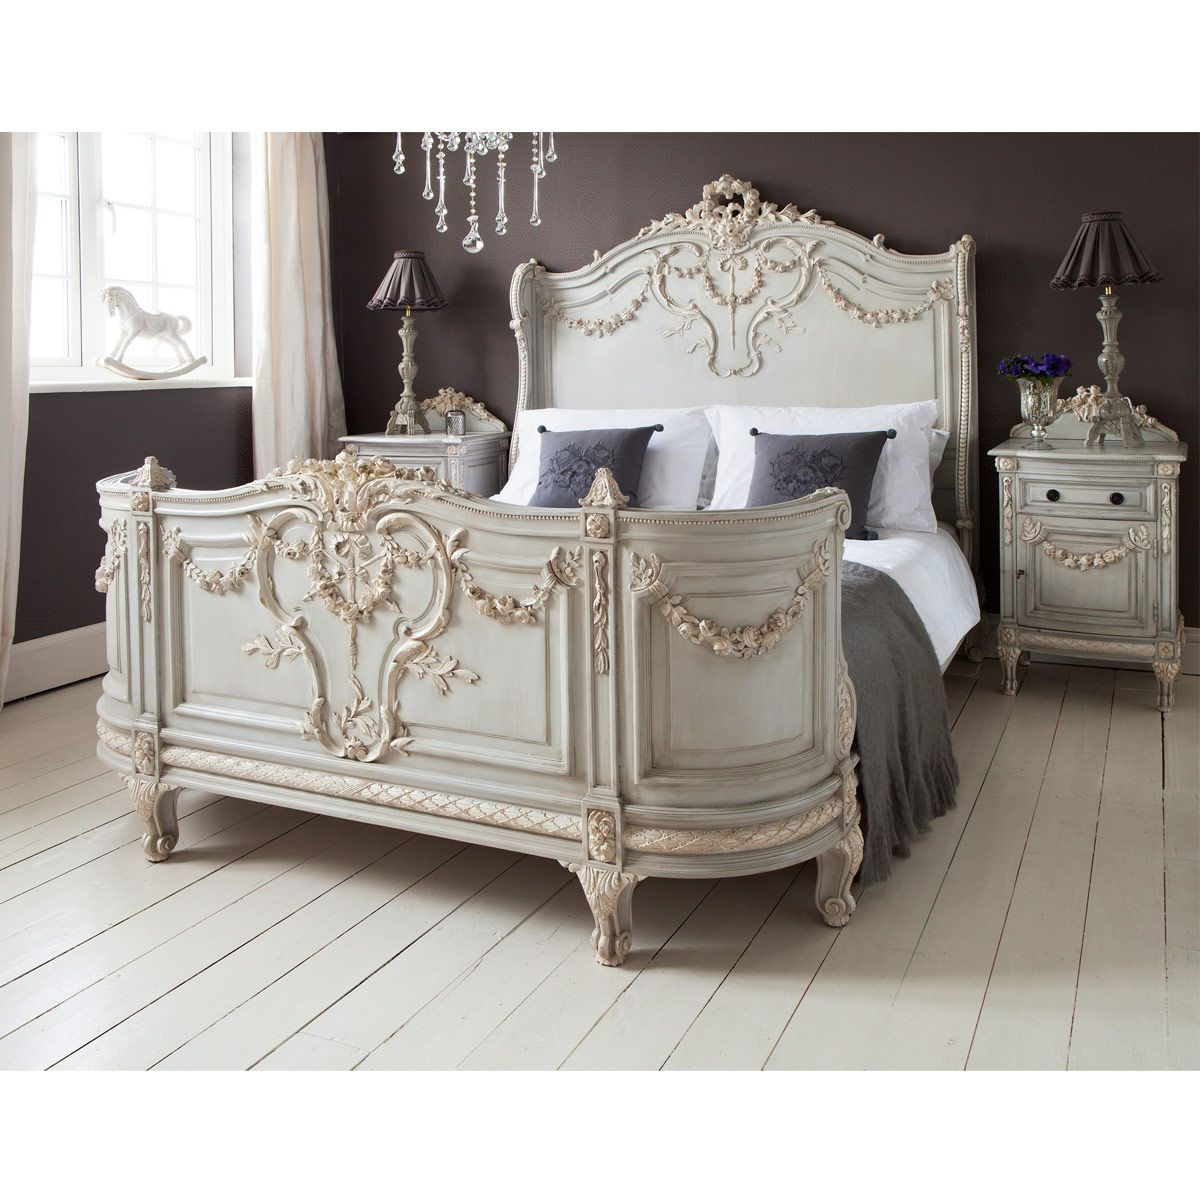 Bonaparte French Bed French Bedroom Company